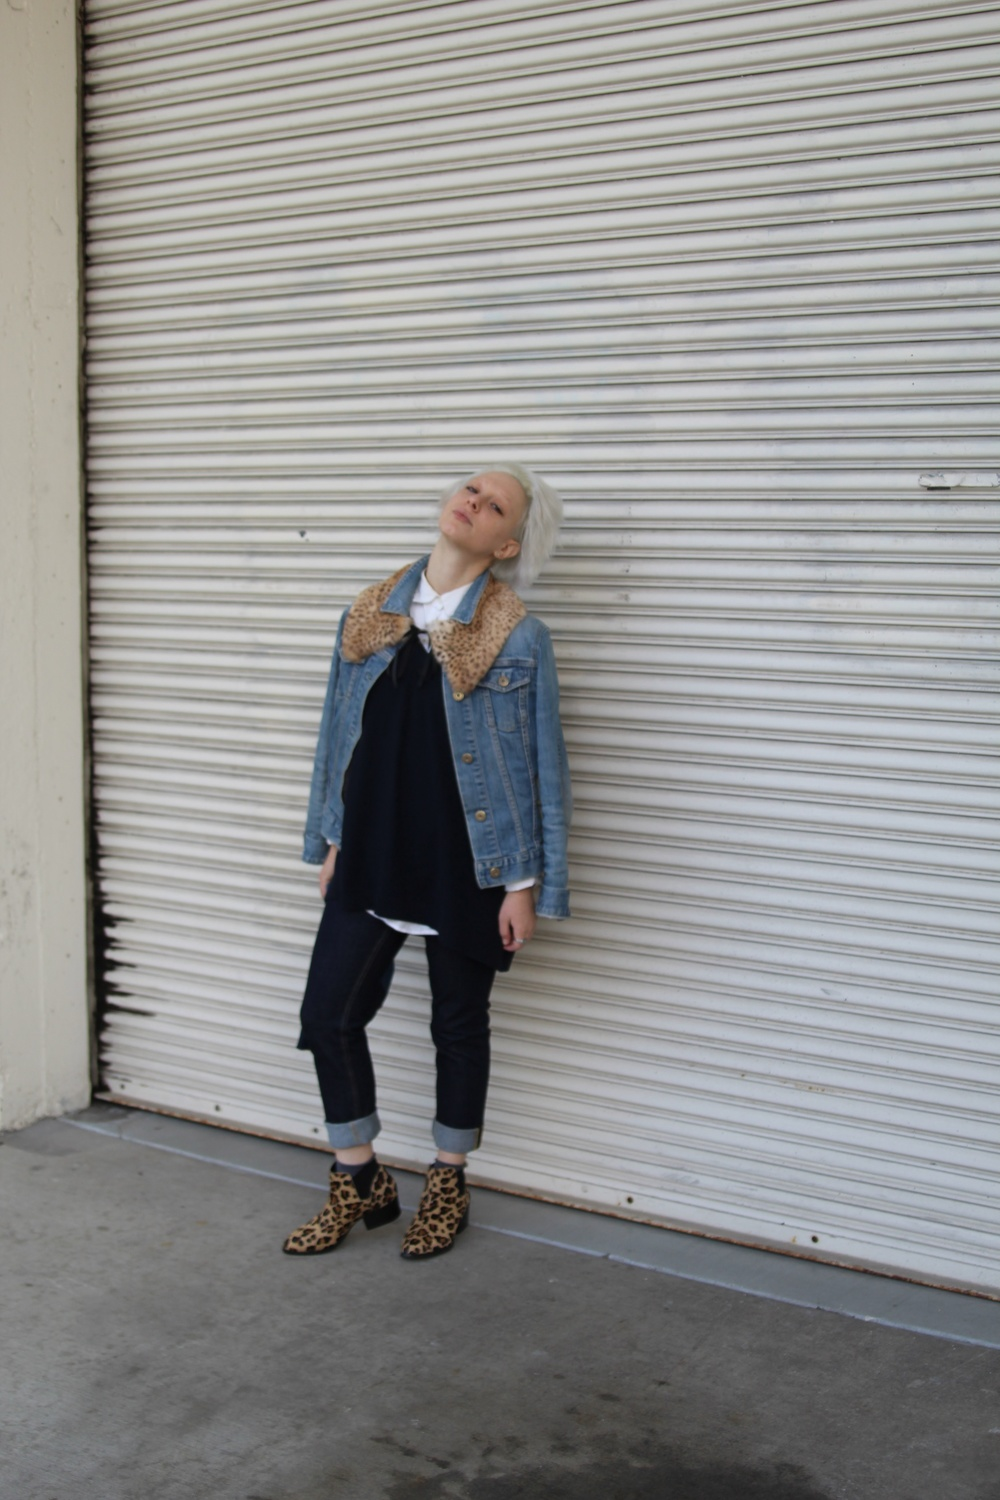 Denim Jacket: Gap (vintage), Epaulette: The Podolls, Shirt: J. Crew, Sweater: Jigsaw London, Jeans: Acne Studios, Socks: Philippe Matignon, Shoes: Steve Madden via DSW, Clutch: Lofti via Legion SF